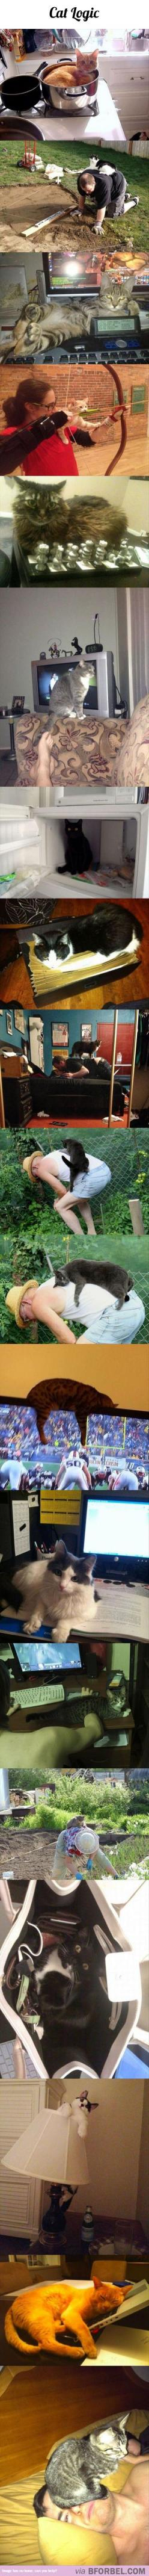 19 Times Cats Defied Logic…: Kitty Cat, Cat Logic, Funny Cats, Crazy Cat, Funny Animal, Cat Lady